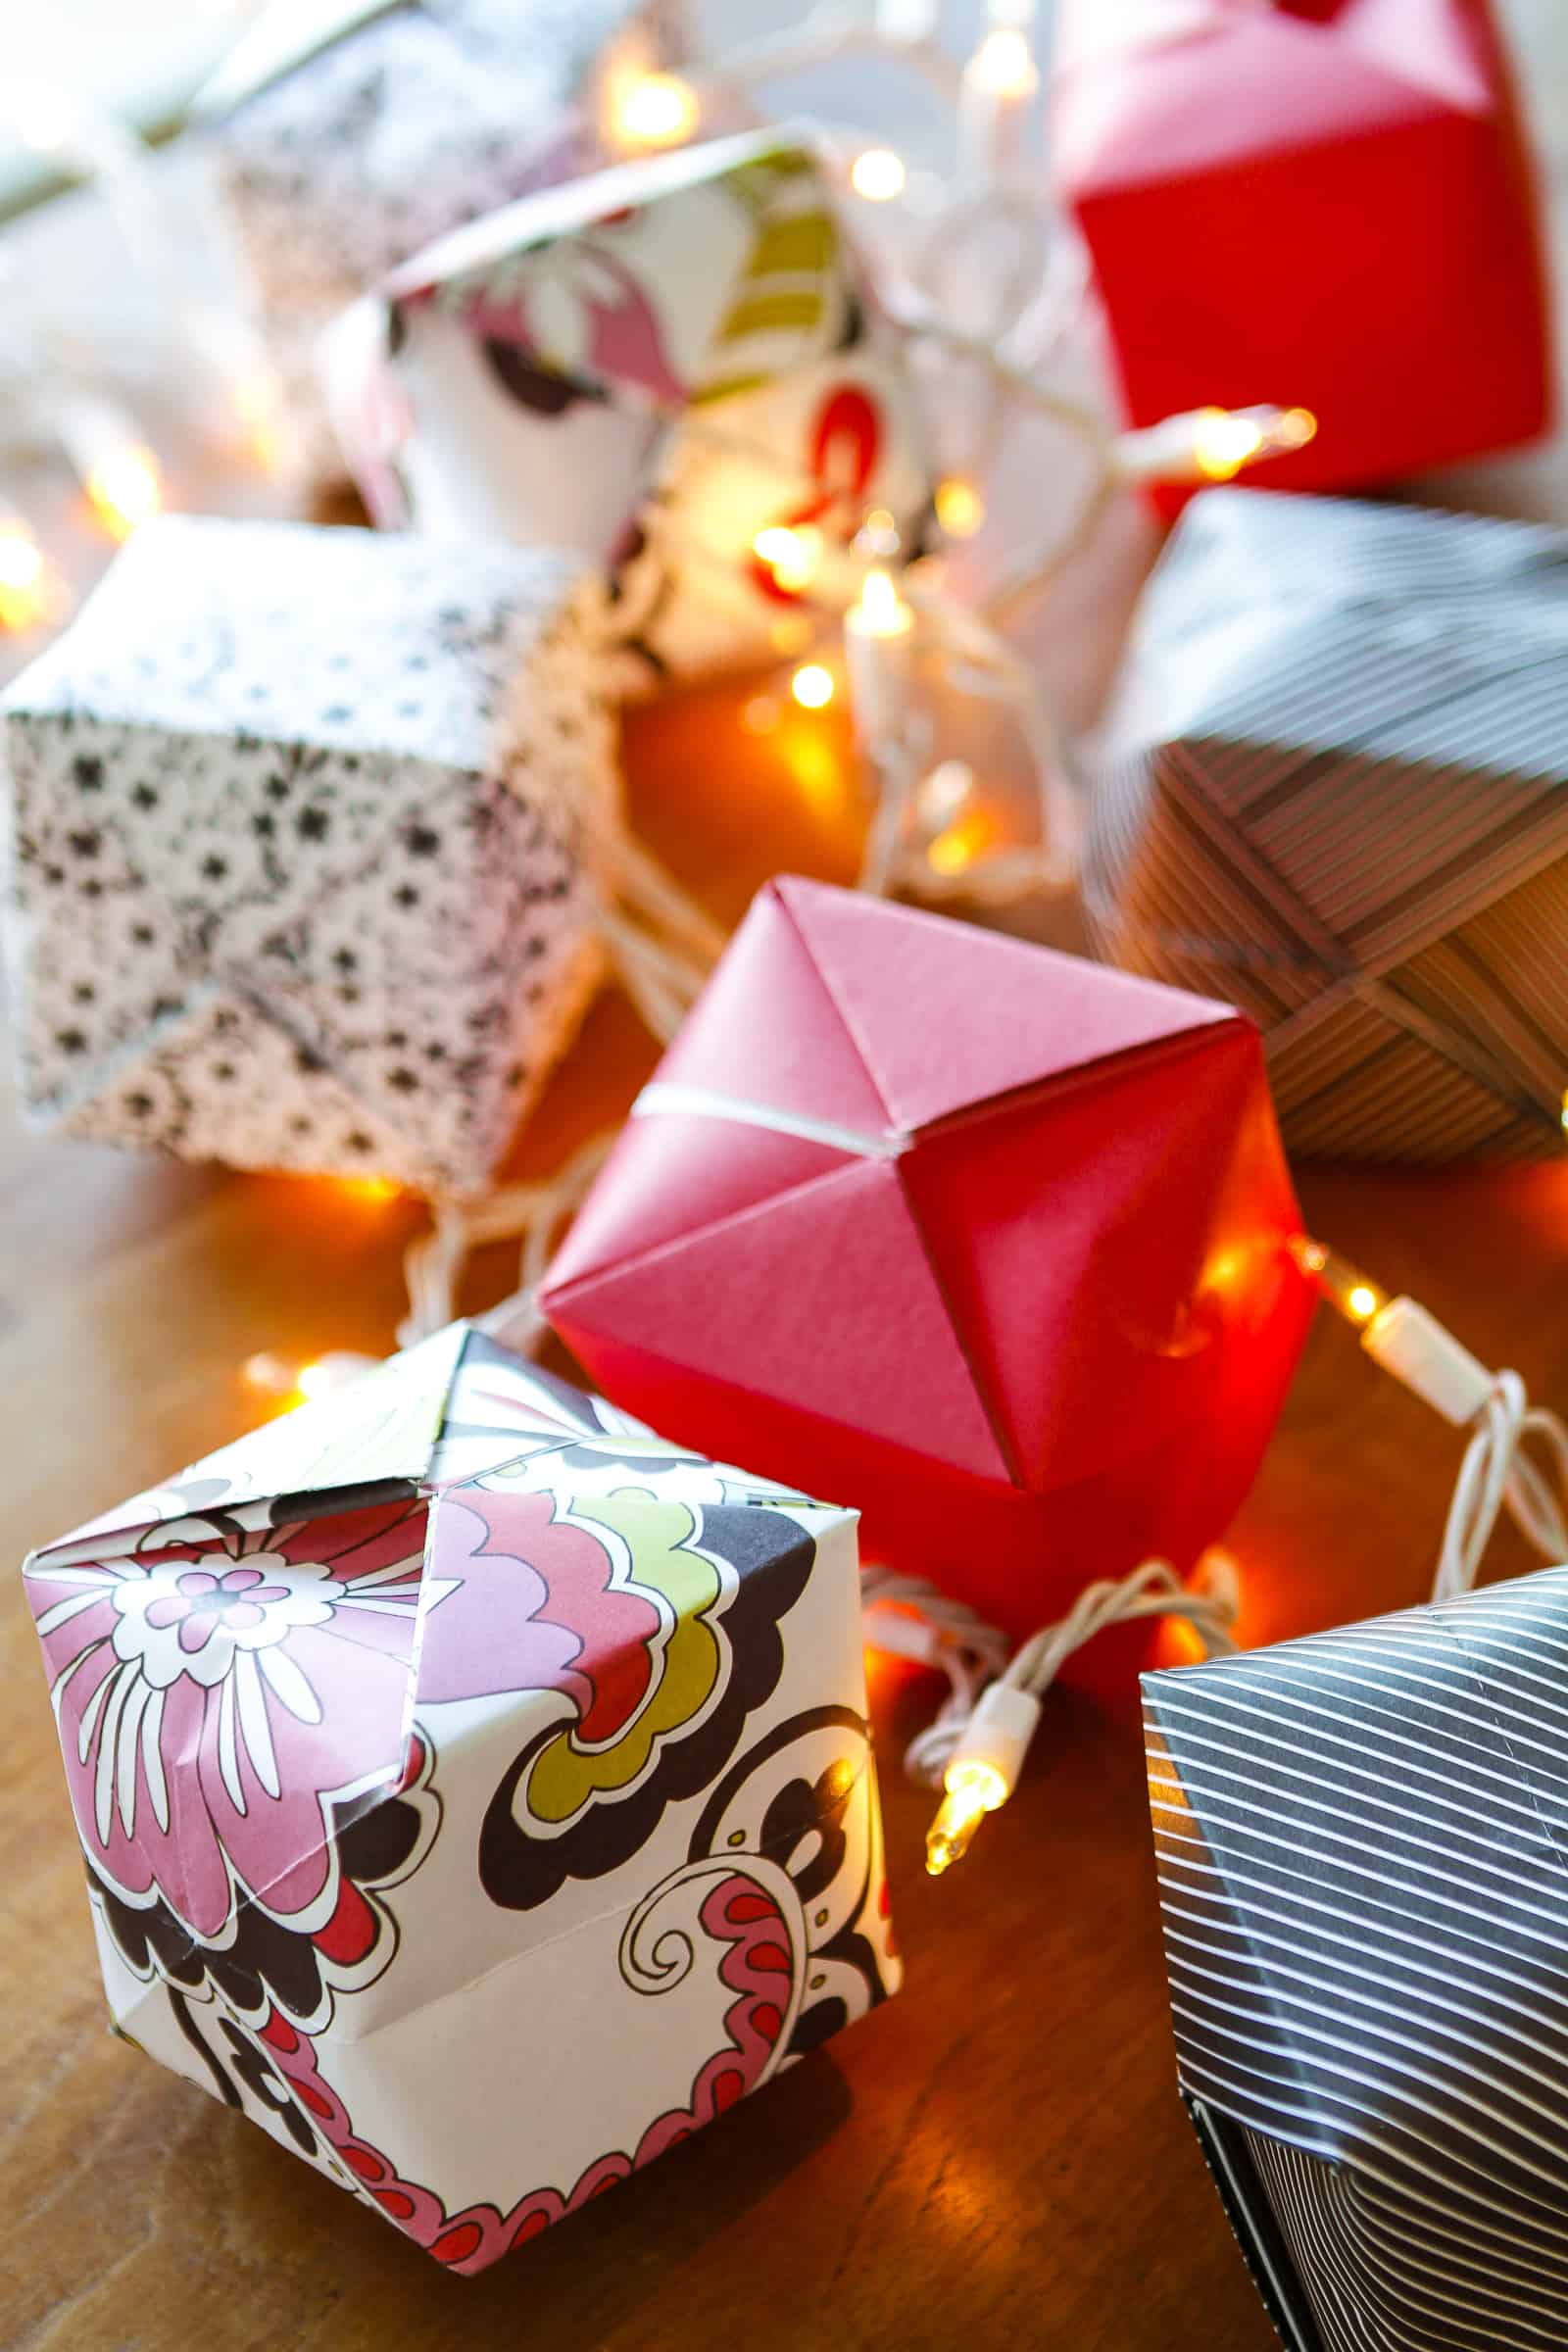 origami lights made from Chinese water bombs